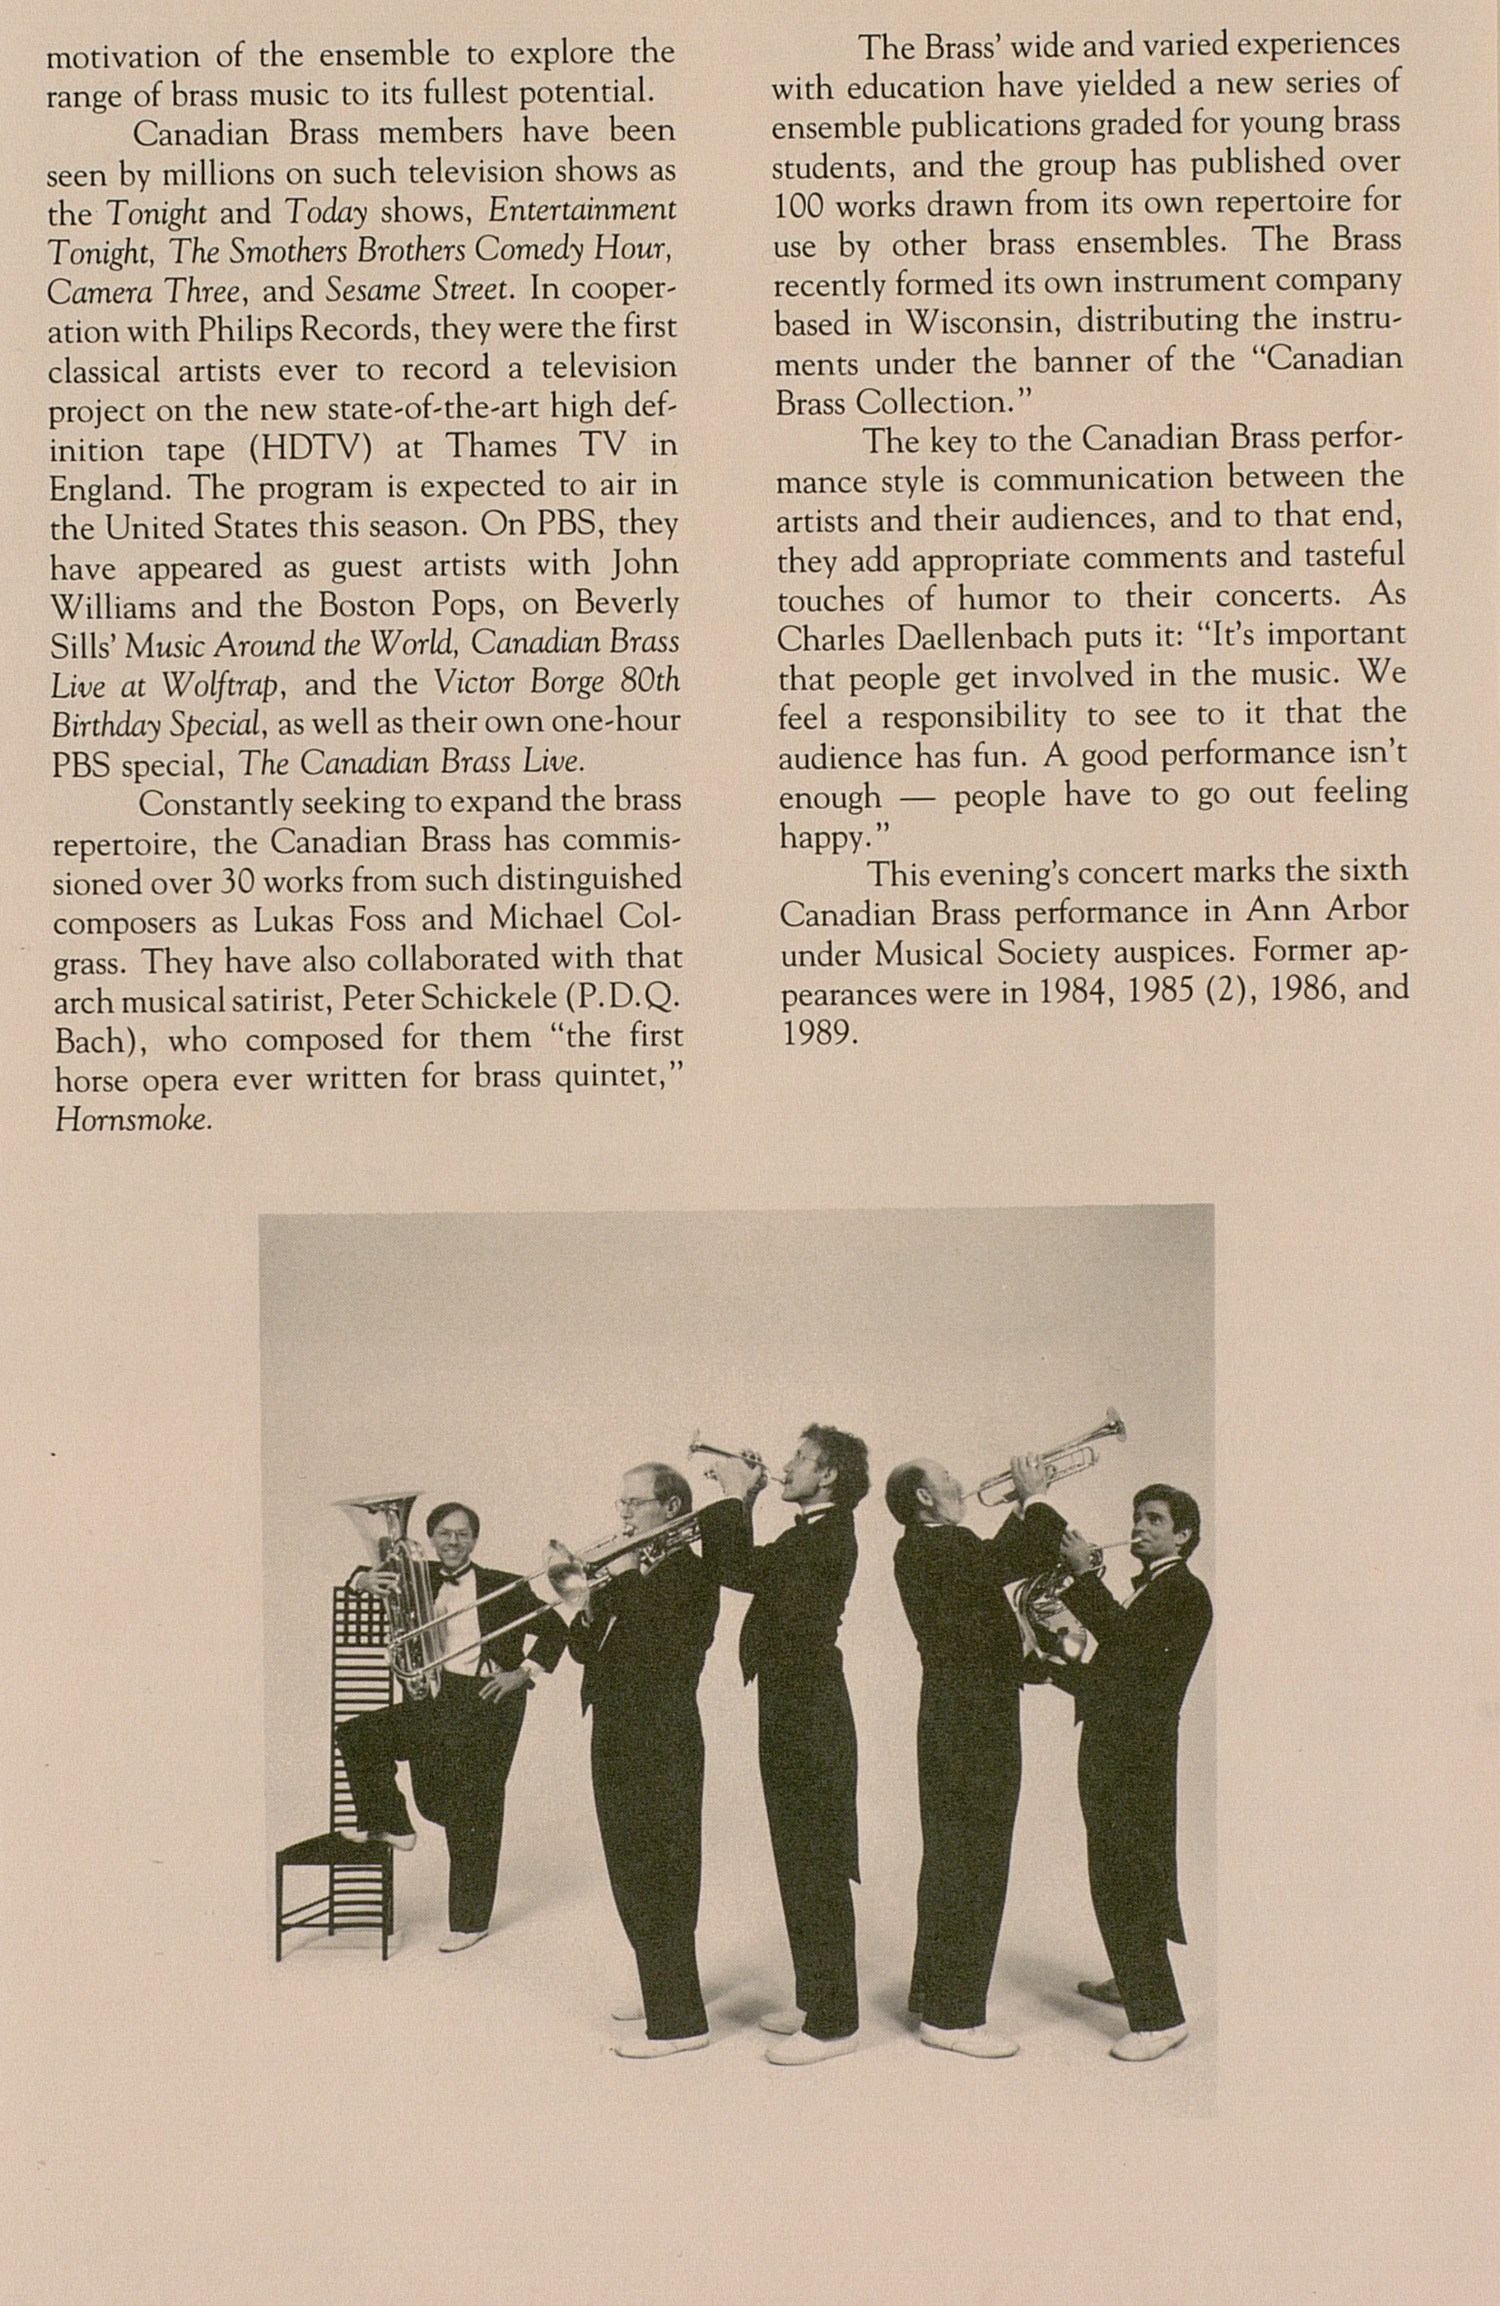 UMS Concert Program, November 9, 1991: The Canadian Brass --  image